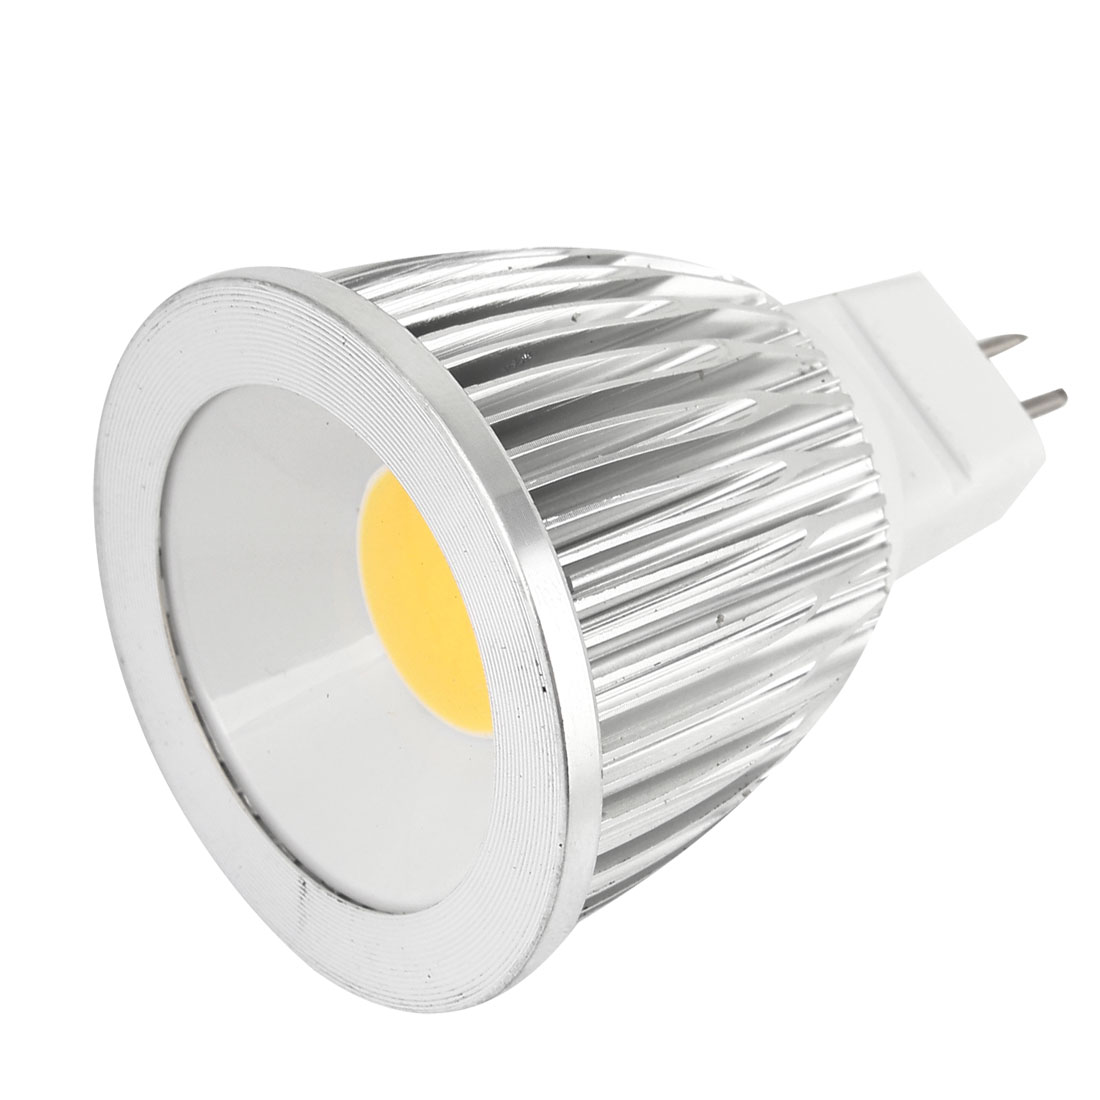 AC 12V 9W 600-650LM MR16 Dimmable Warm White Light COB LED Downlight Spotlight